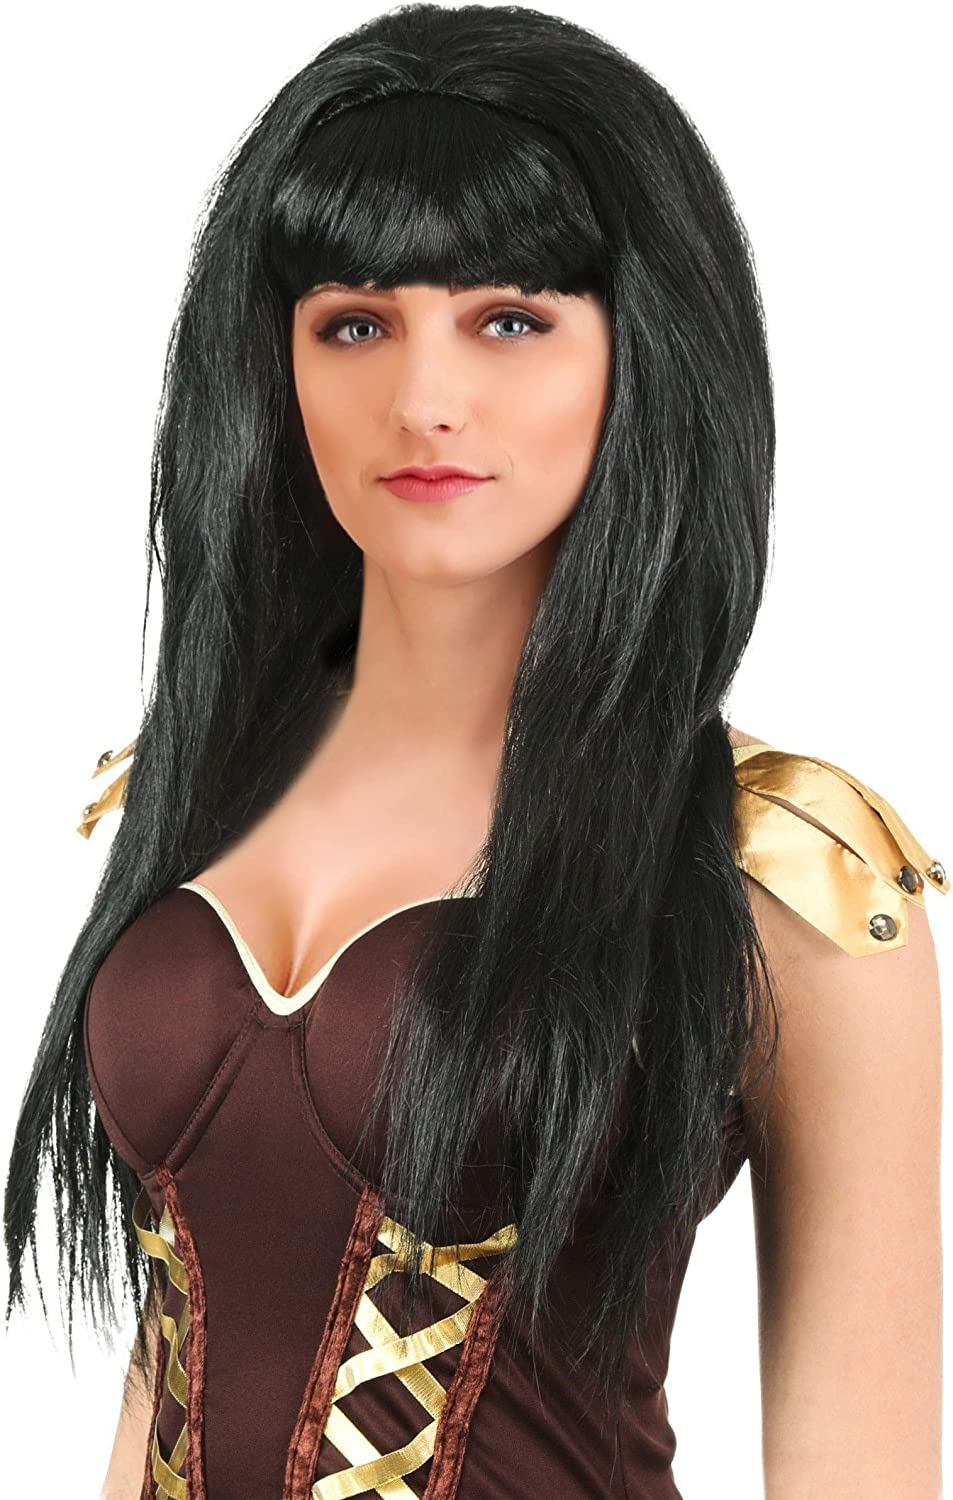 Fun Costumes Womens Xena Adult Max 66% OFF Synthetic online shopping Wig Black